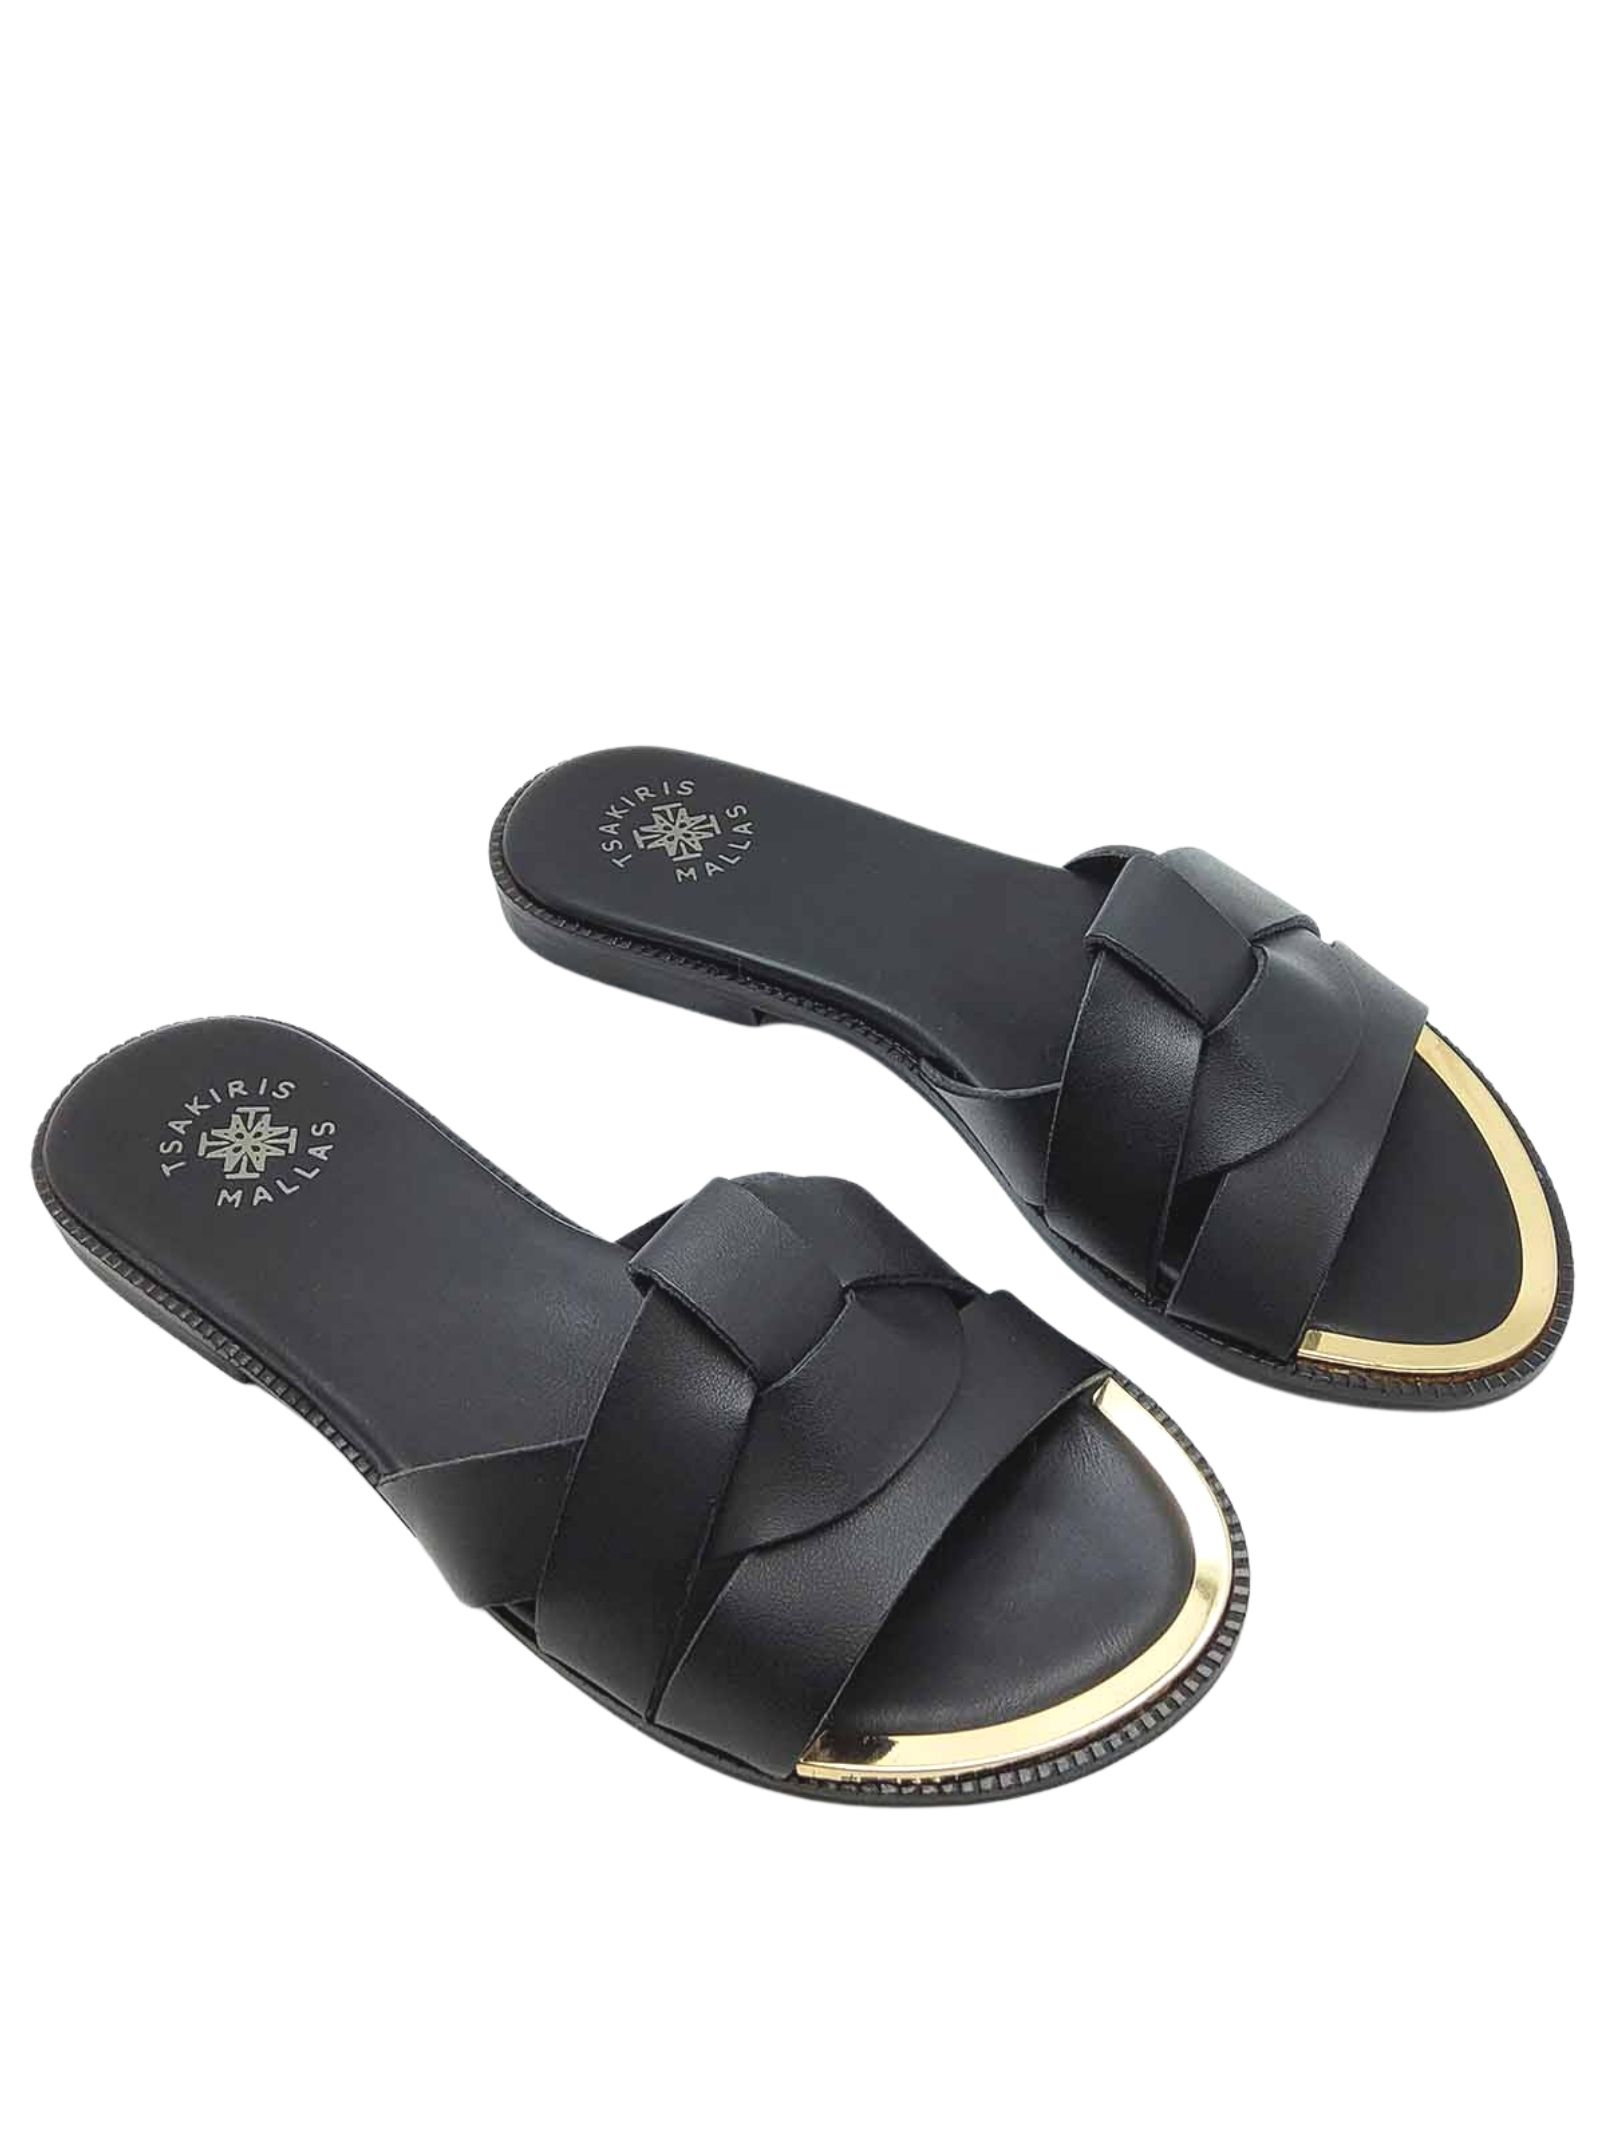 Women's Shoes Low Barefoot Sandal Black Braided Leather Slipper with Gold Metal Toe Exe   Flat sandals   703001